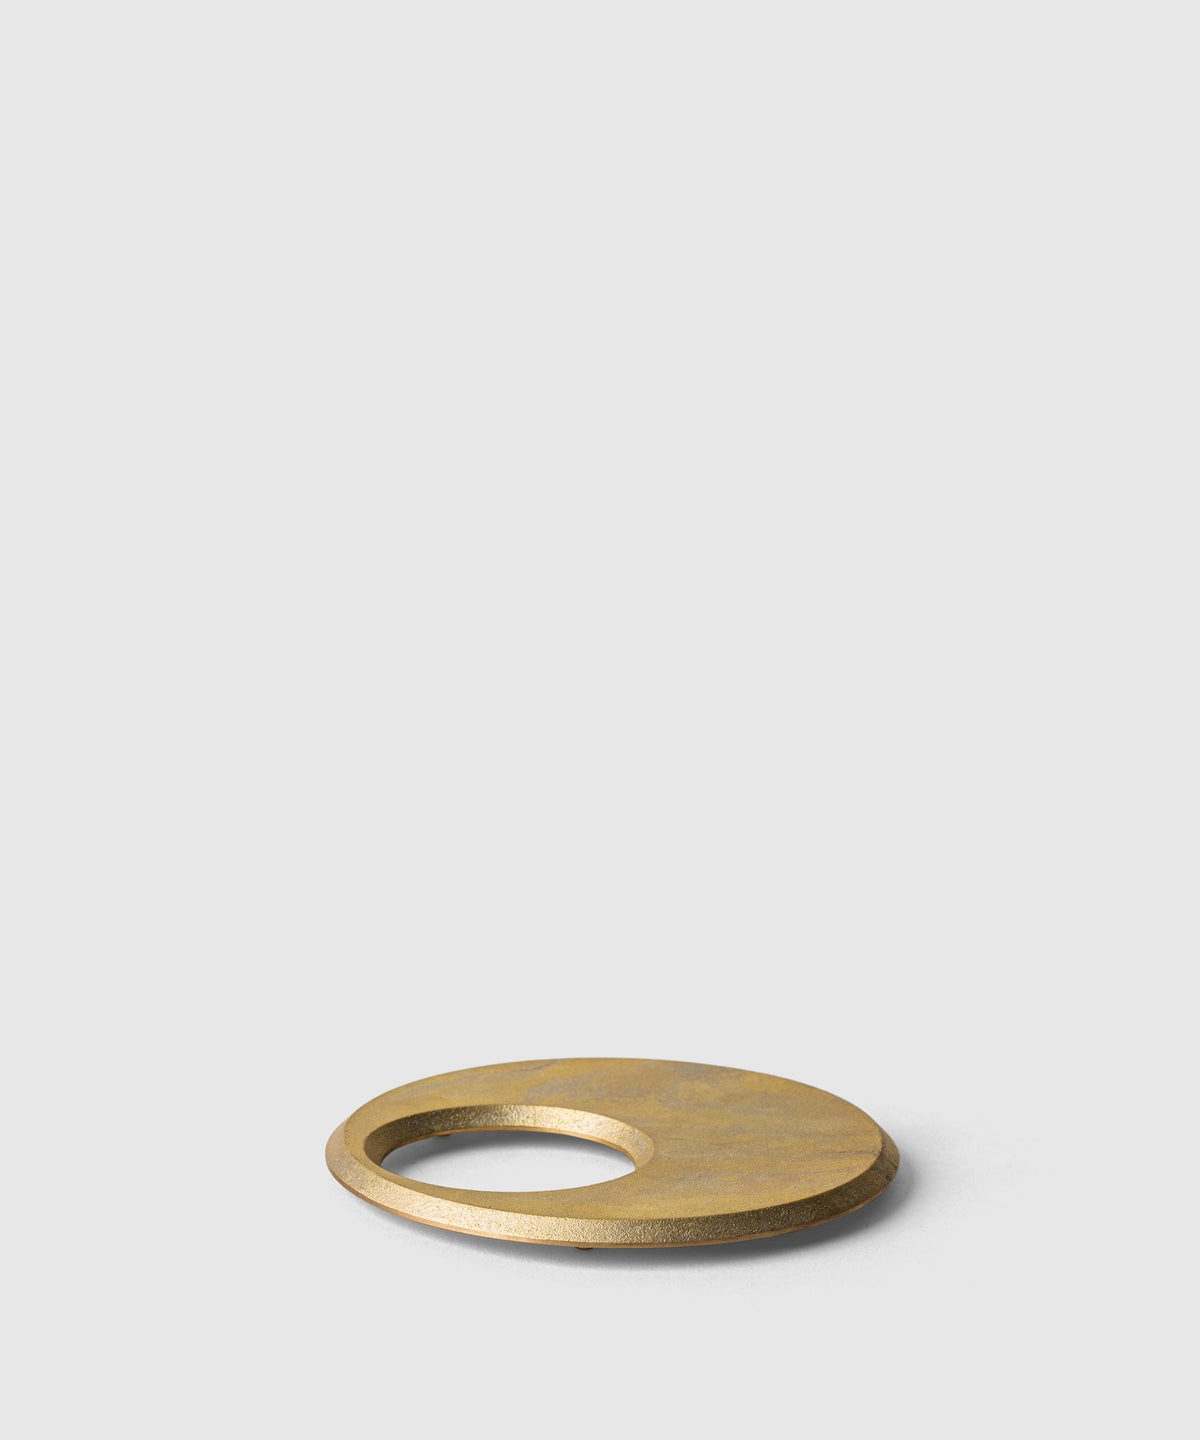 Futagami Brass Moon Trivet or Desktop Paperweight